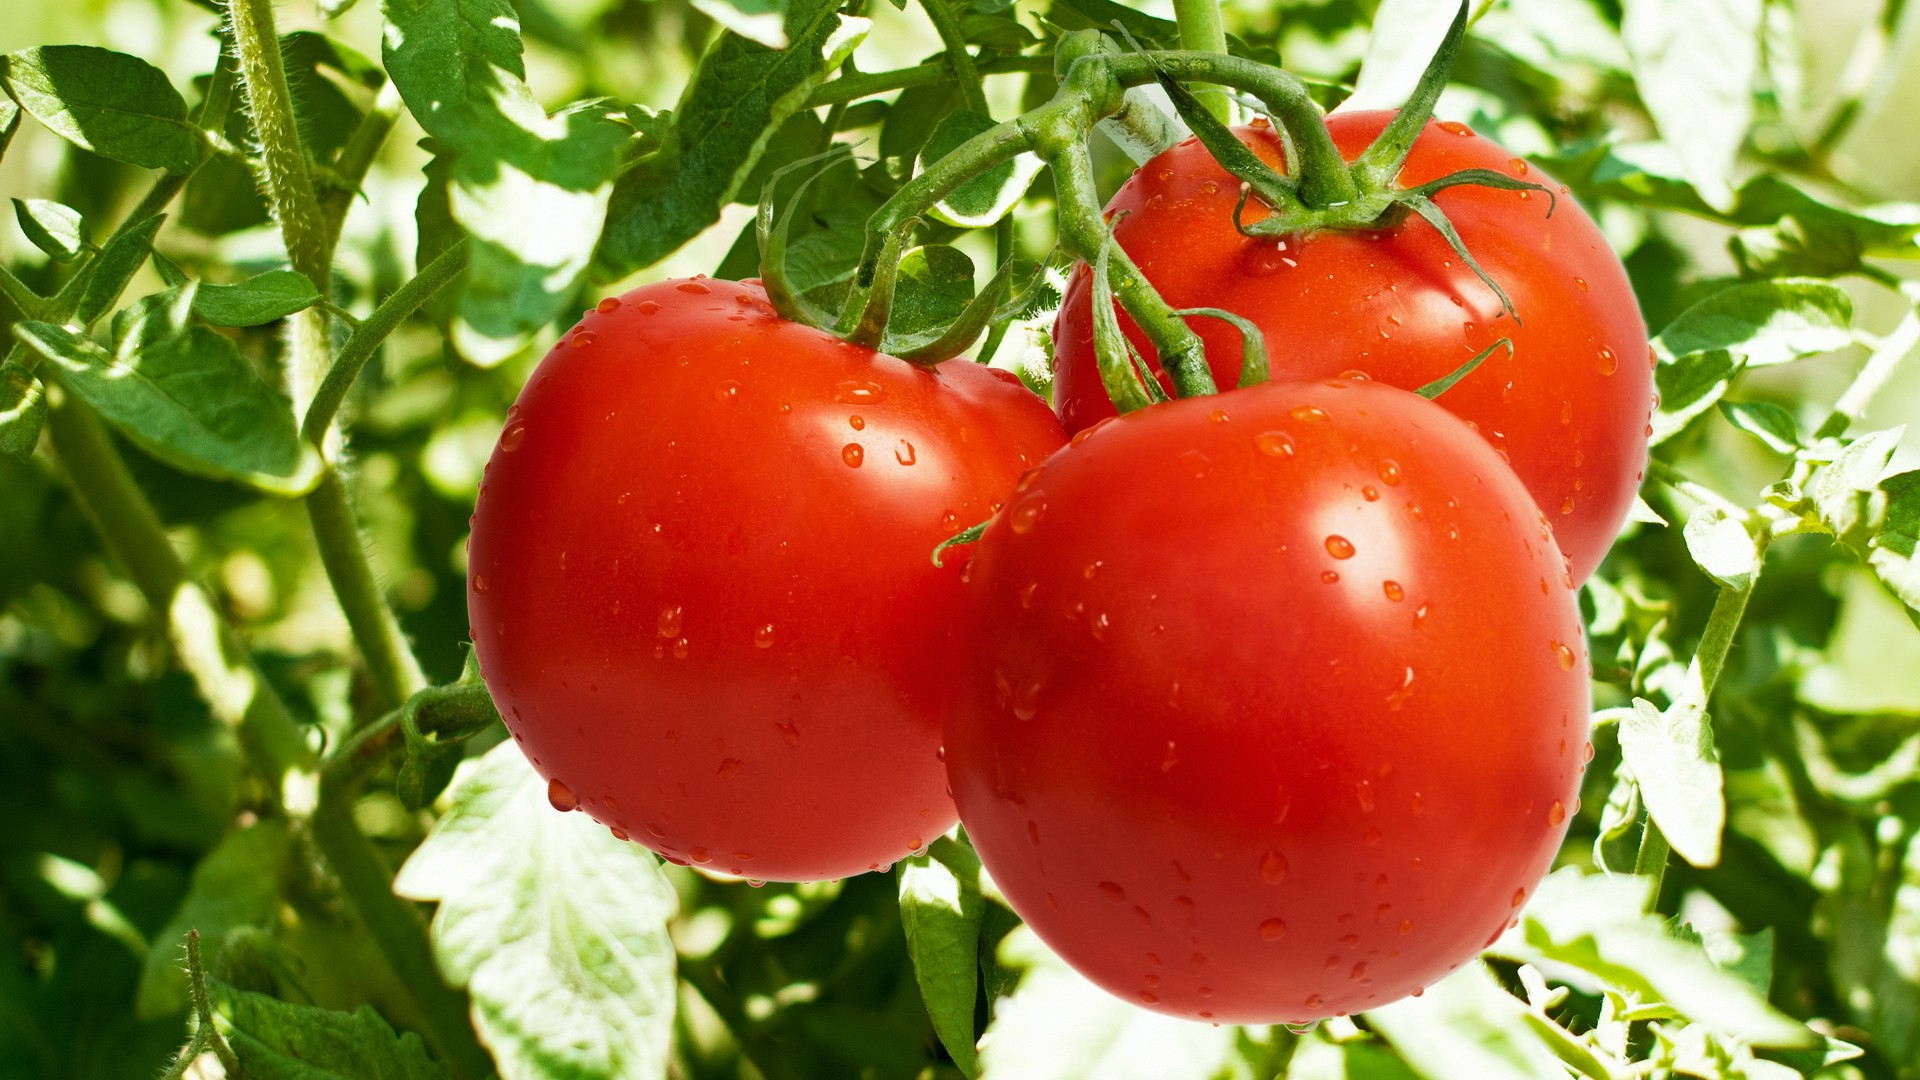 Nature___Plants____Juicy_tomatoes_064798_